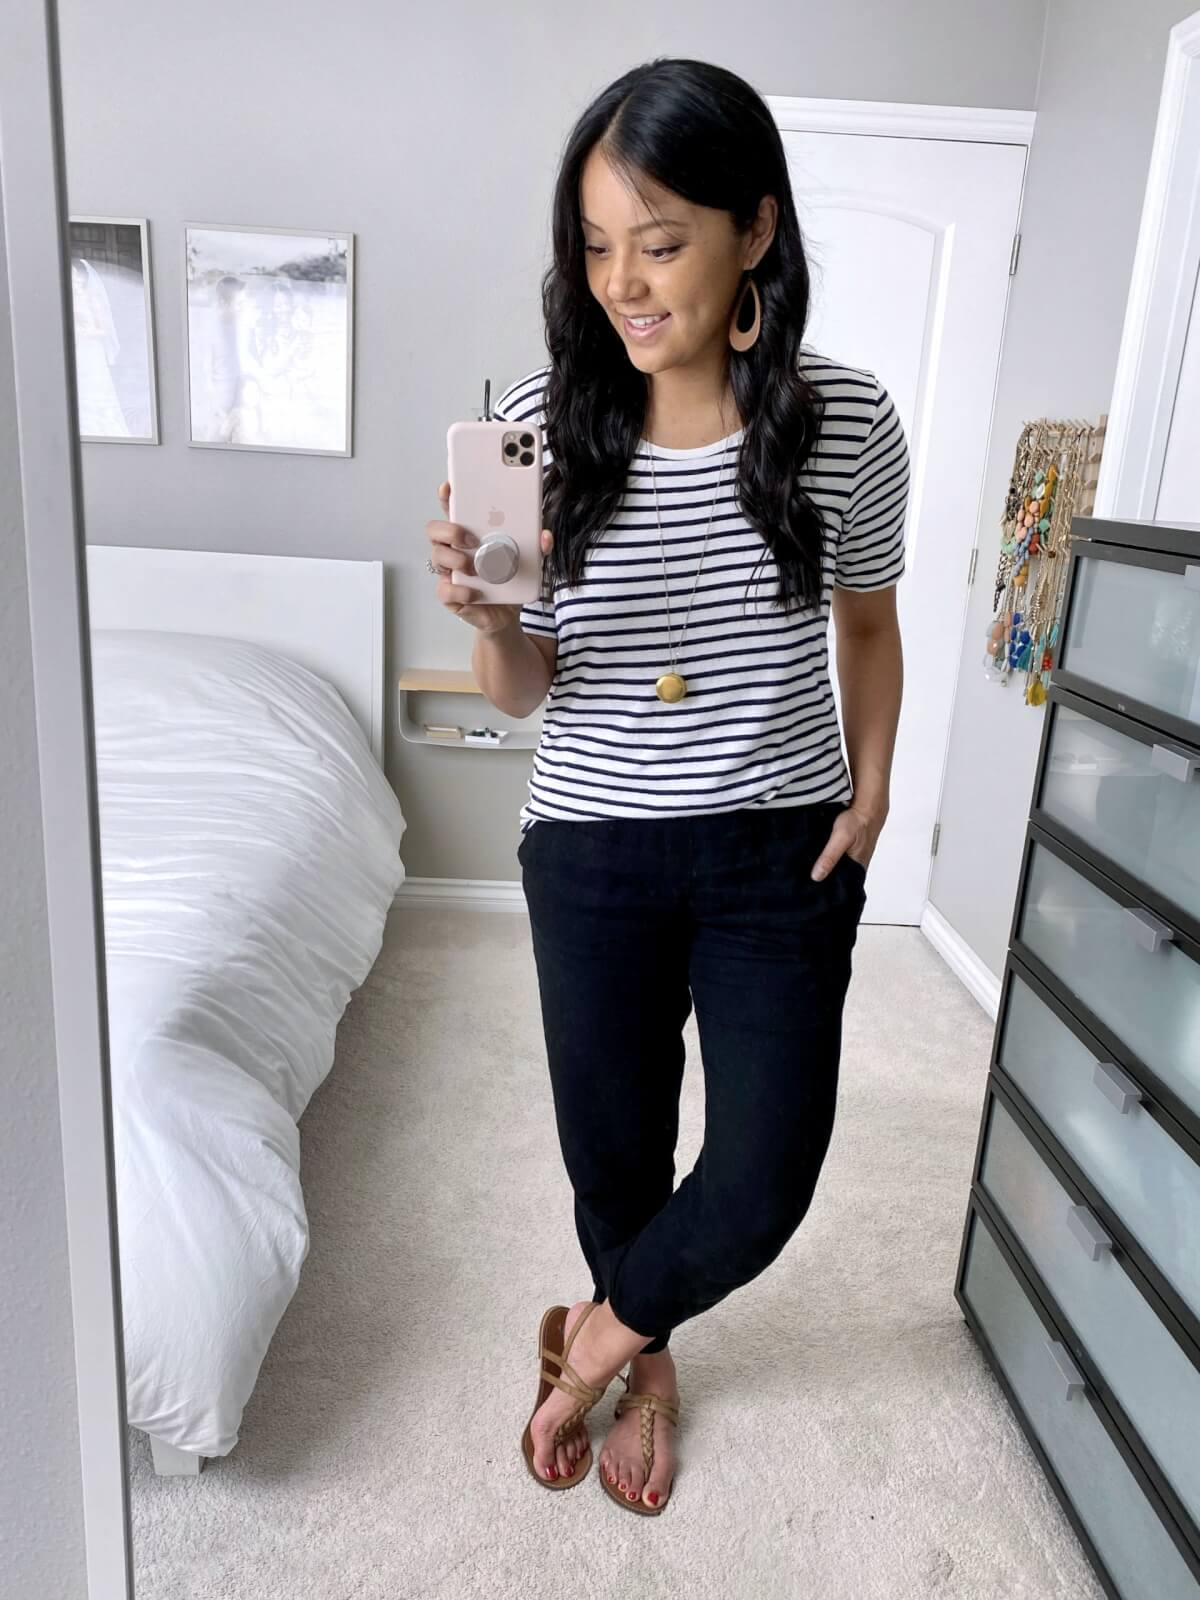 Summer Pants Casual Outfit: black and white striped tee + black linen pants + pendant necklace+ tan earrings + nude sandals